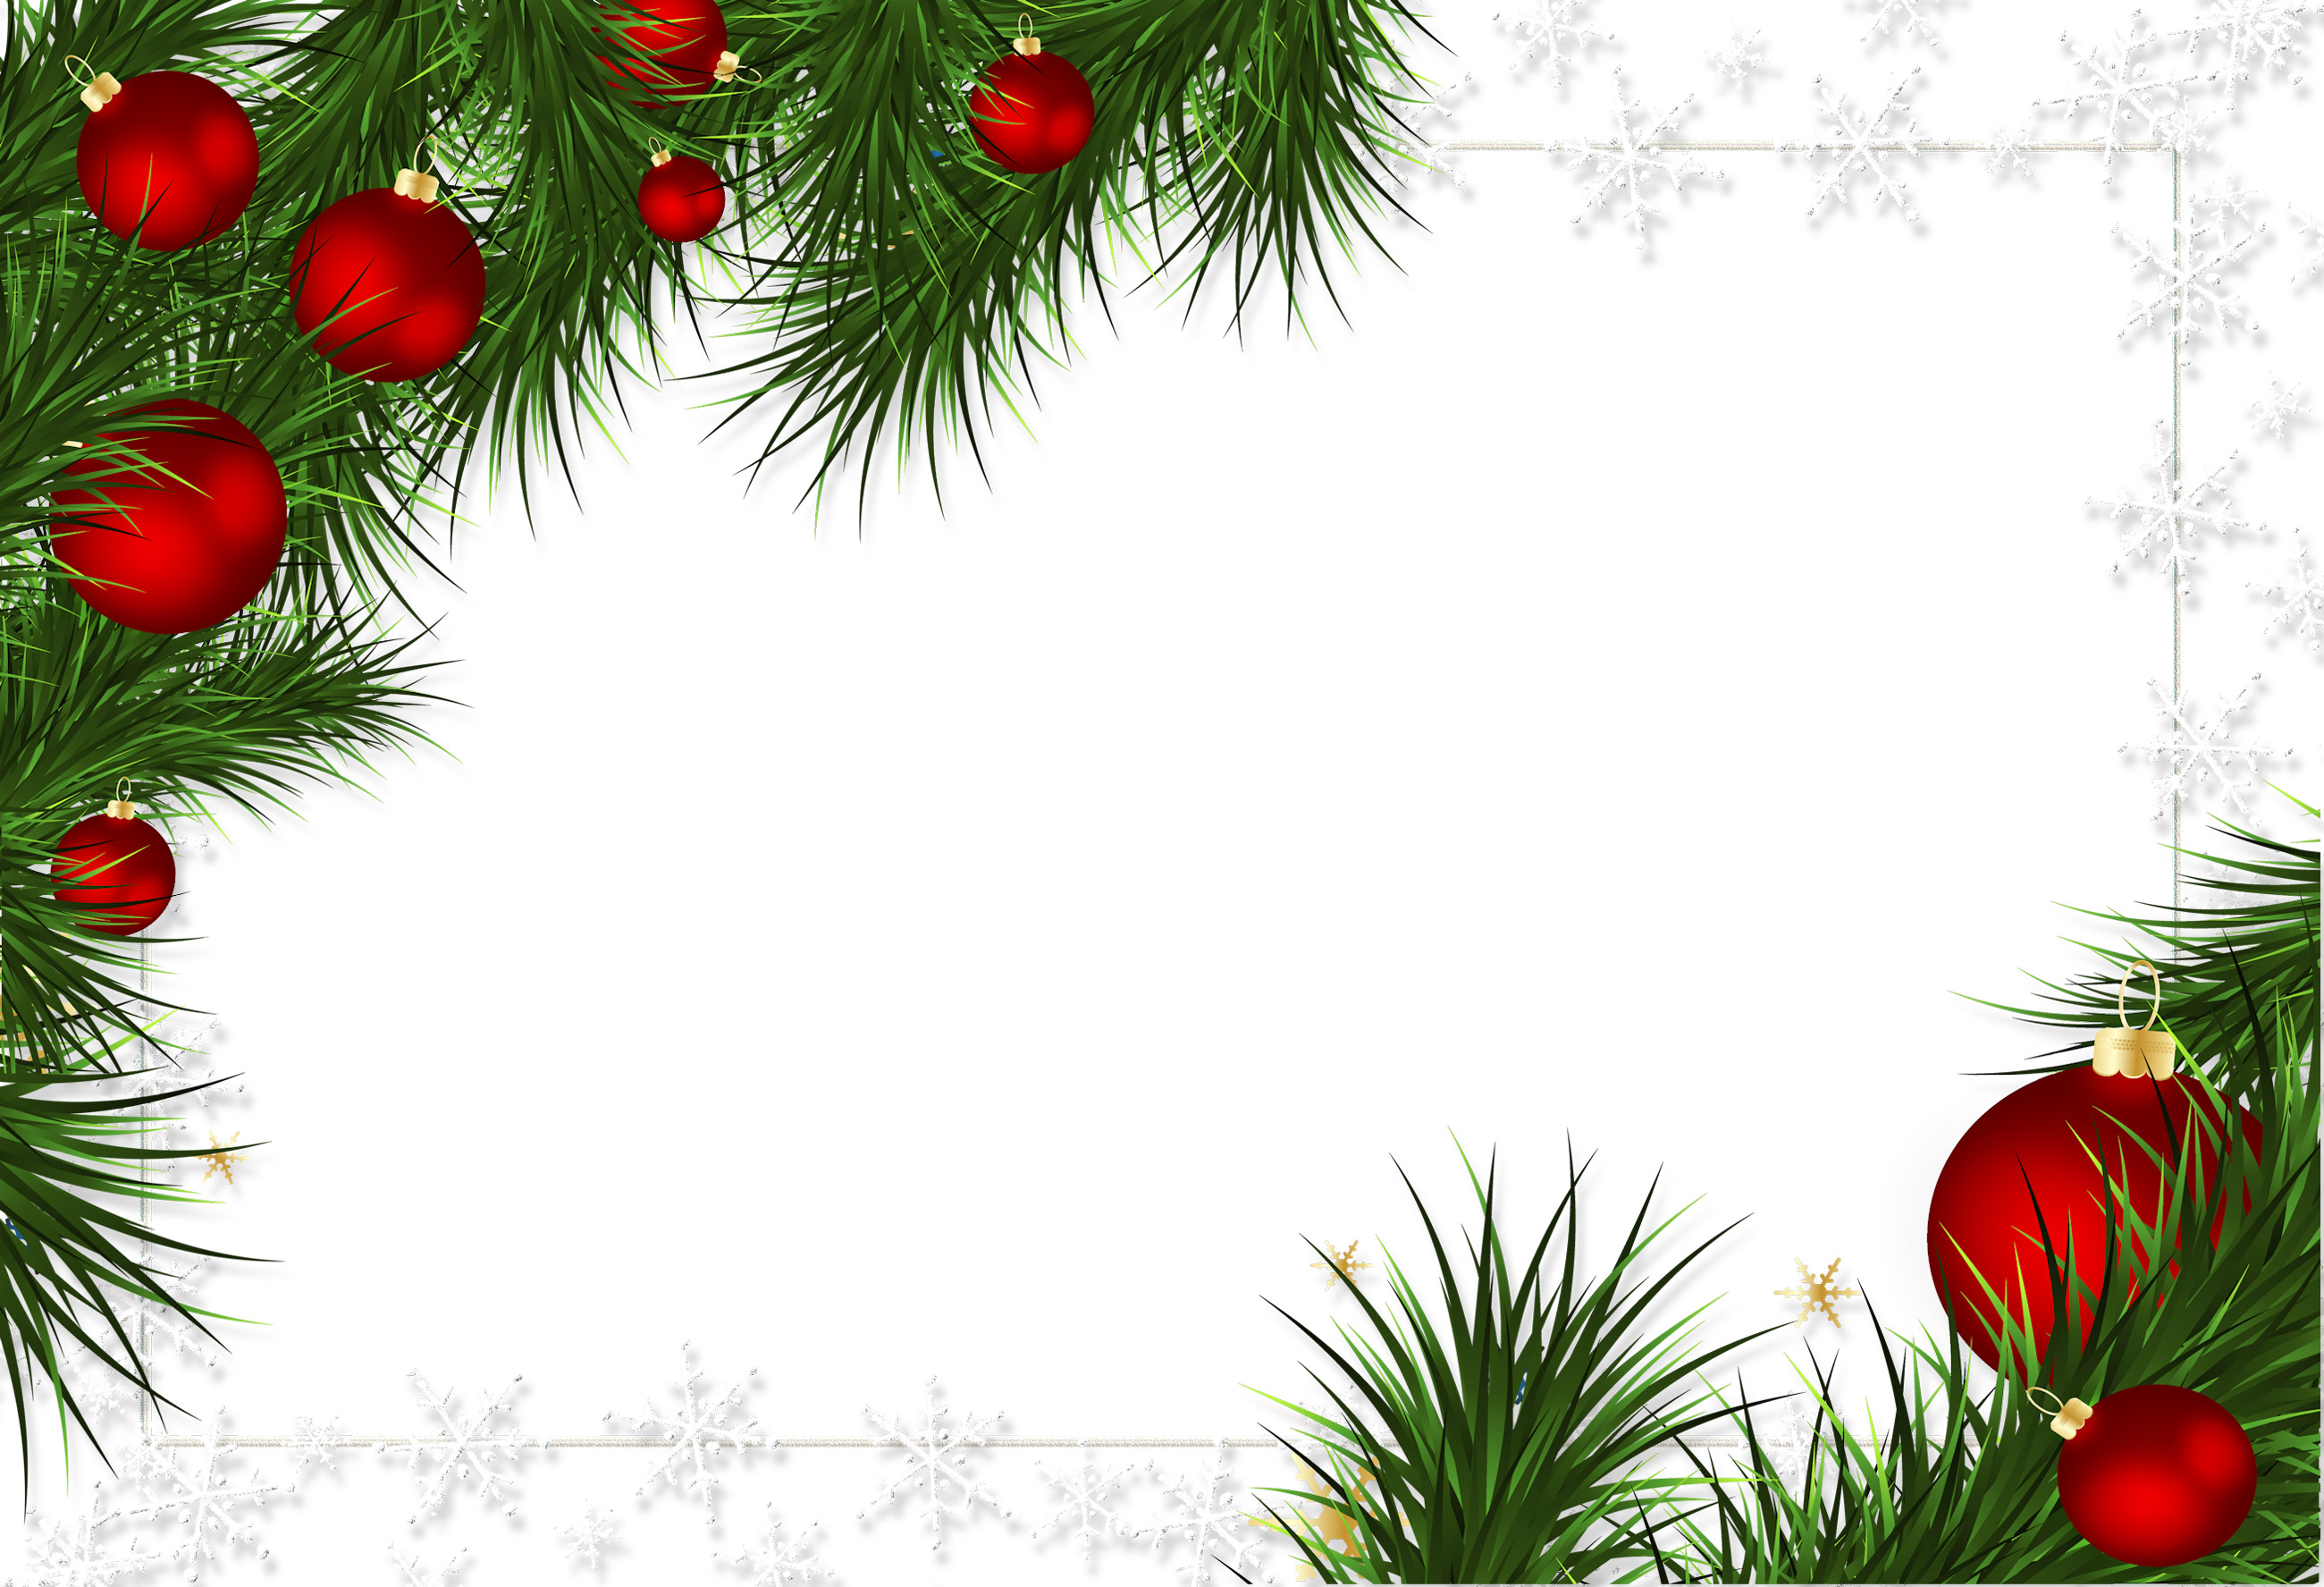 Merry Christmas Wallpaper Clip Art 43 Images